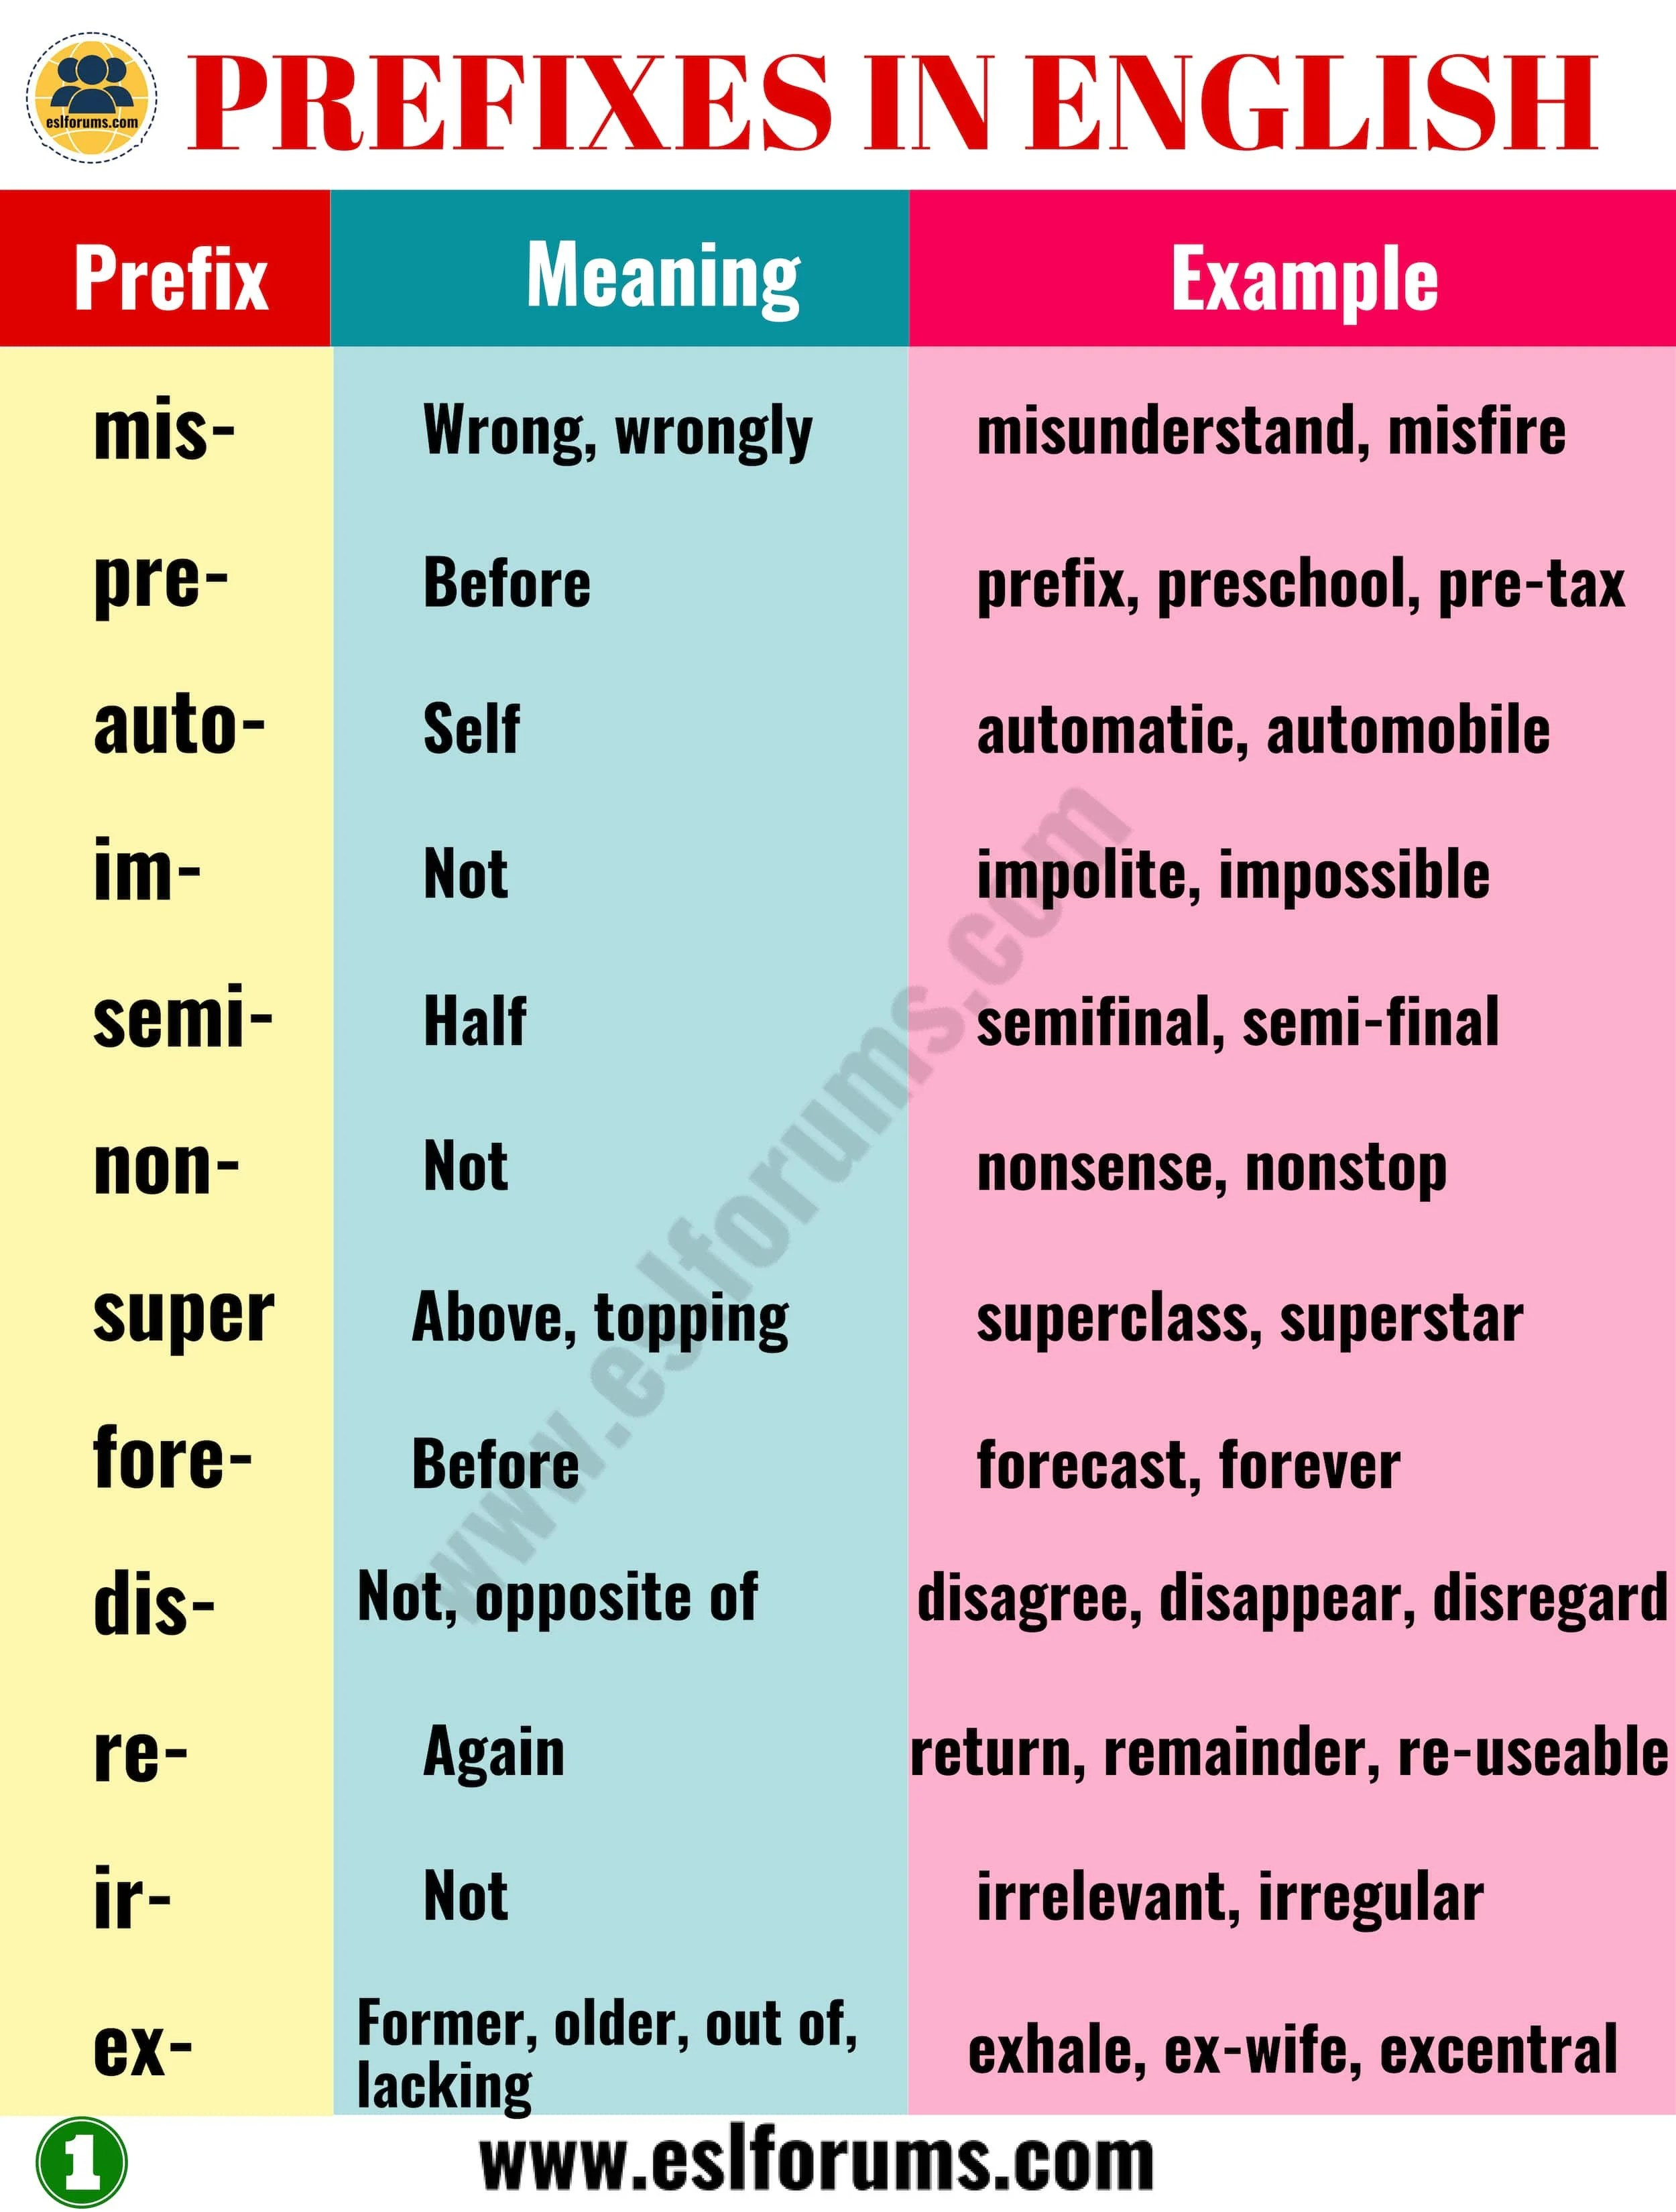 35 Most Common Prefixes In English With Their Meanings